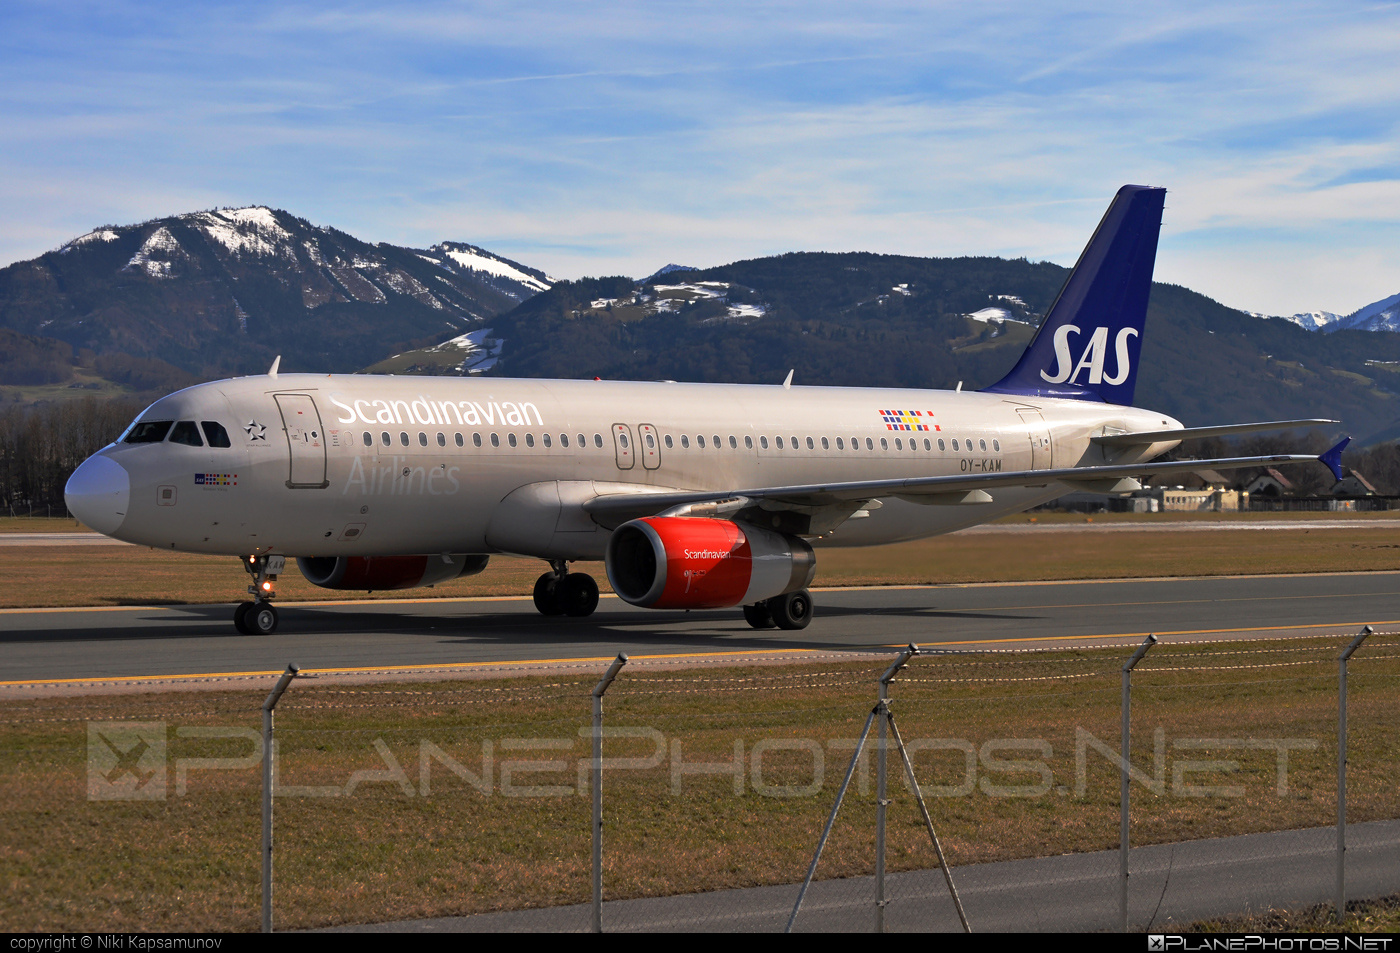 Airbus A320-232 - OY-KAM operated by Scandinavian Airlines (SAS) #a320 #a320family #airbus #airbus320 #sas #sasairlines #scandinavianairlines